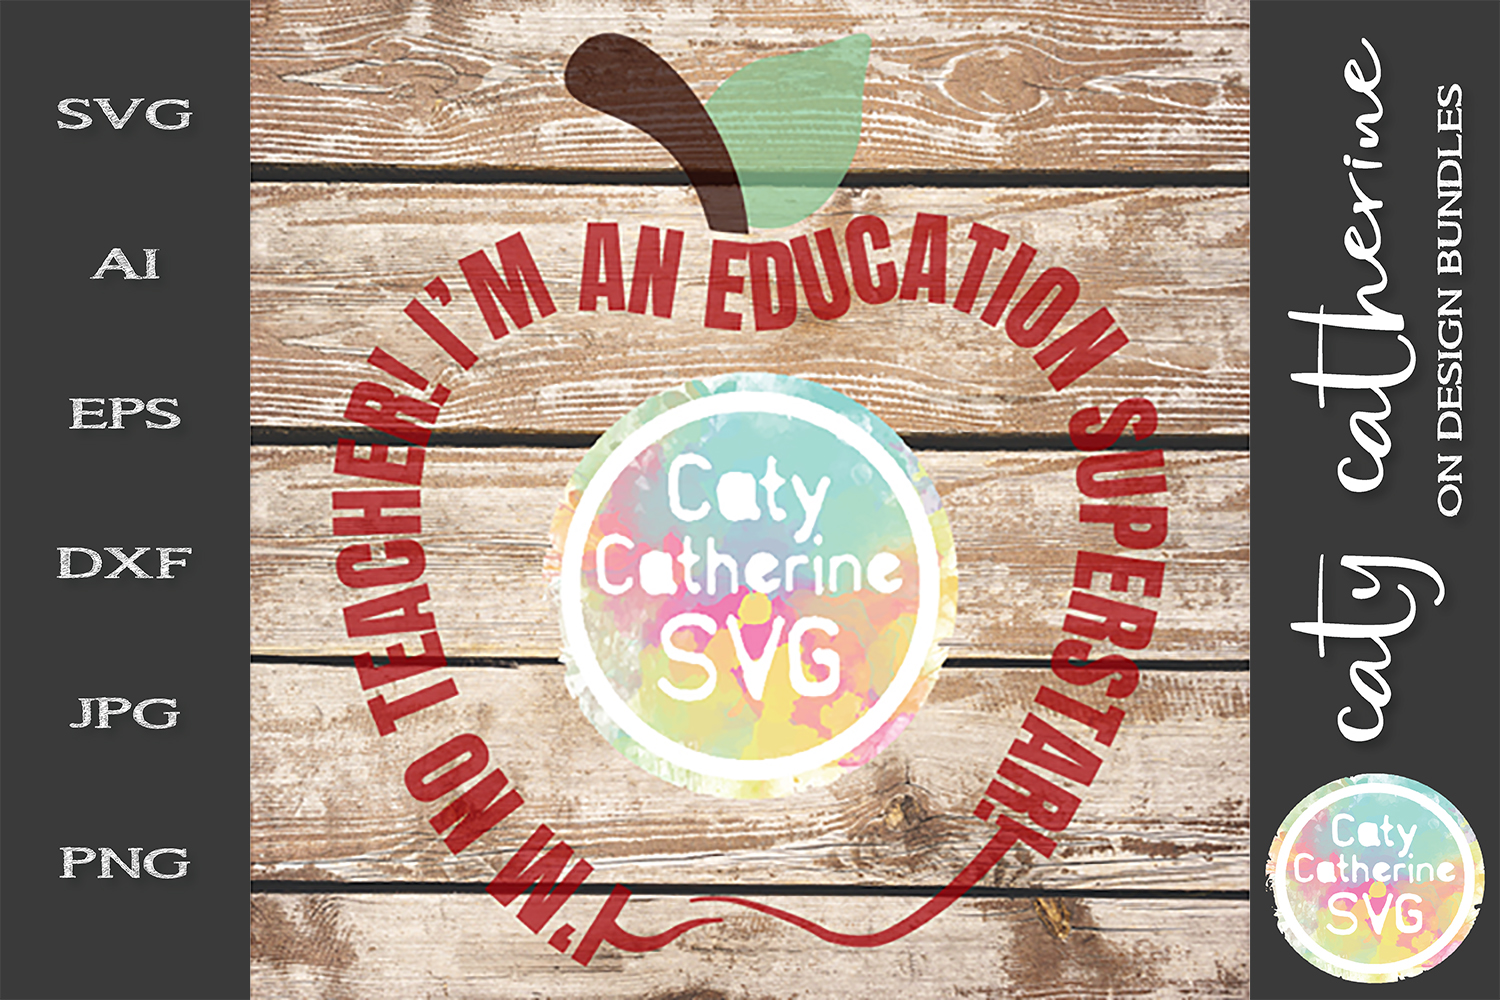 I'm No Teacher I'm An Education Superstar SVG Cut File example image 2